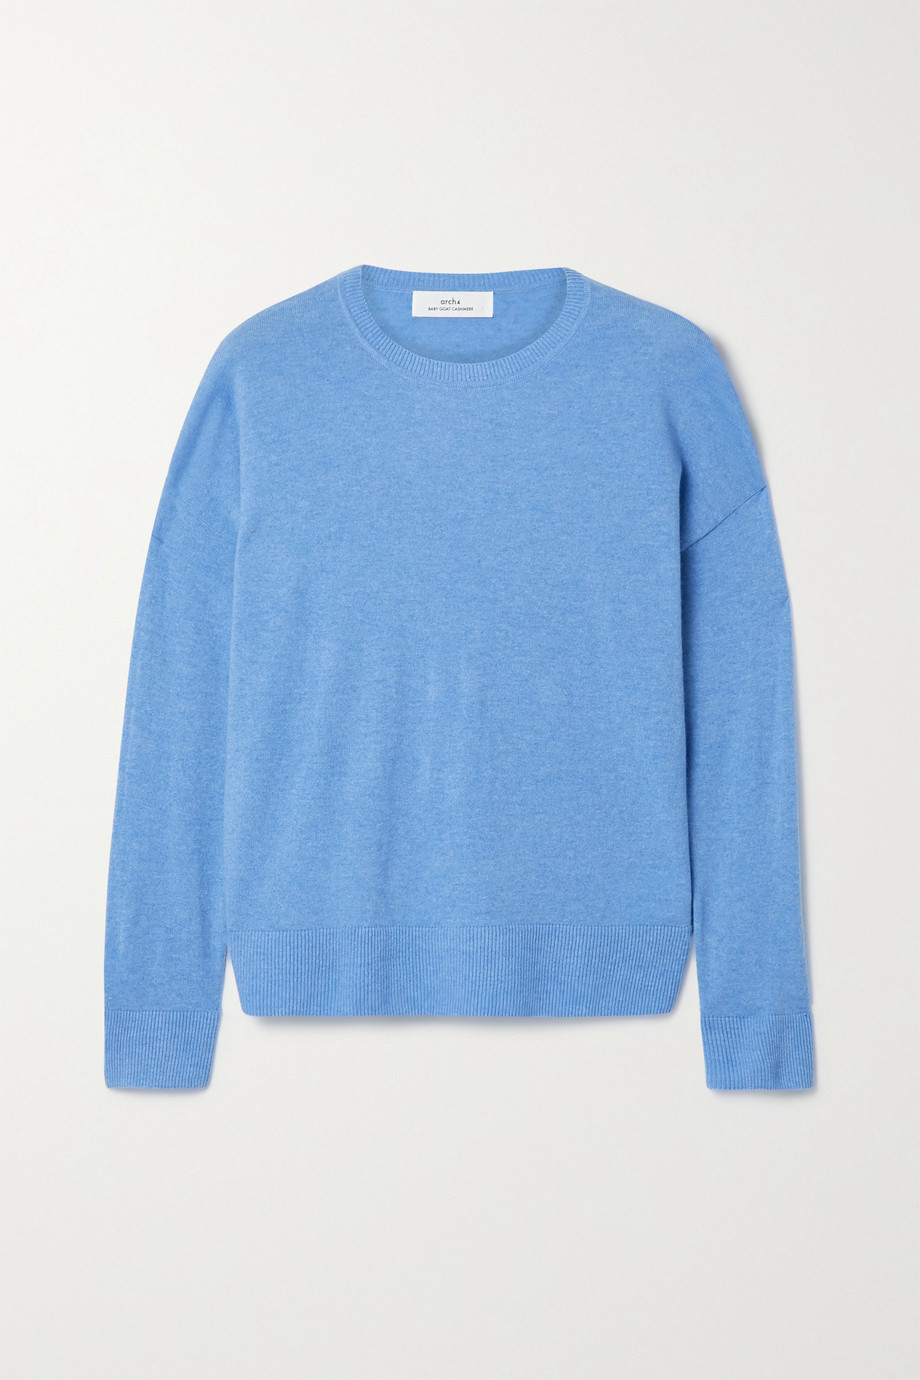 Arch4 Lucy cashmere sweater